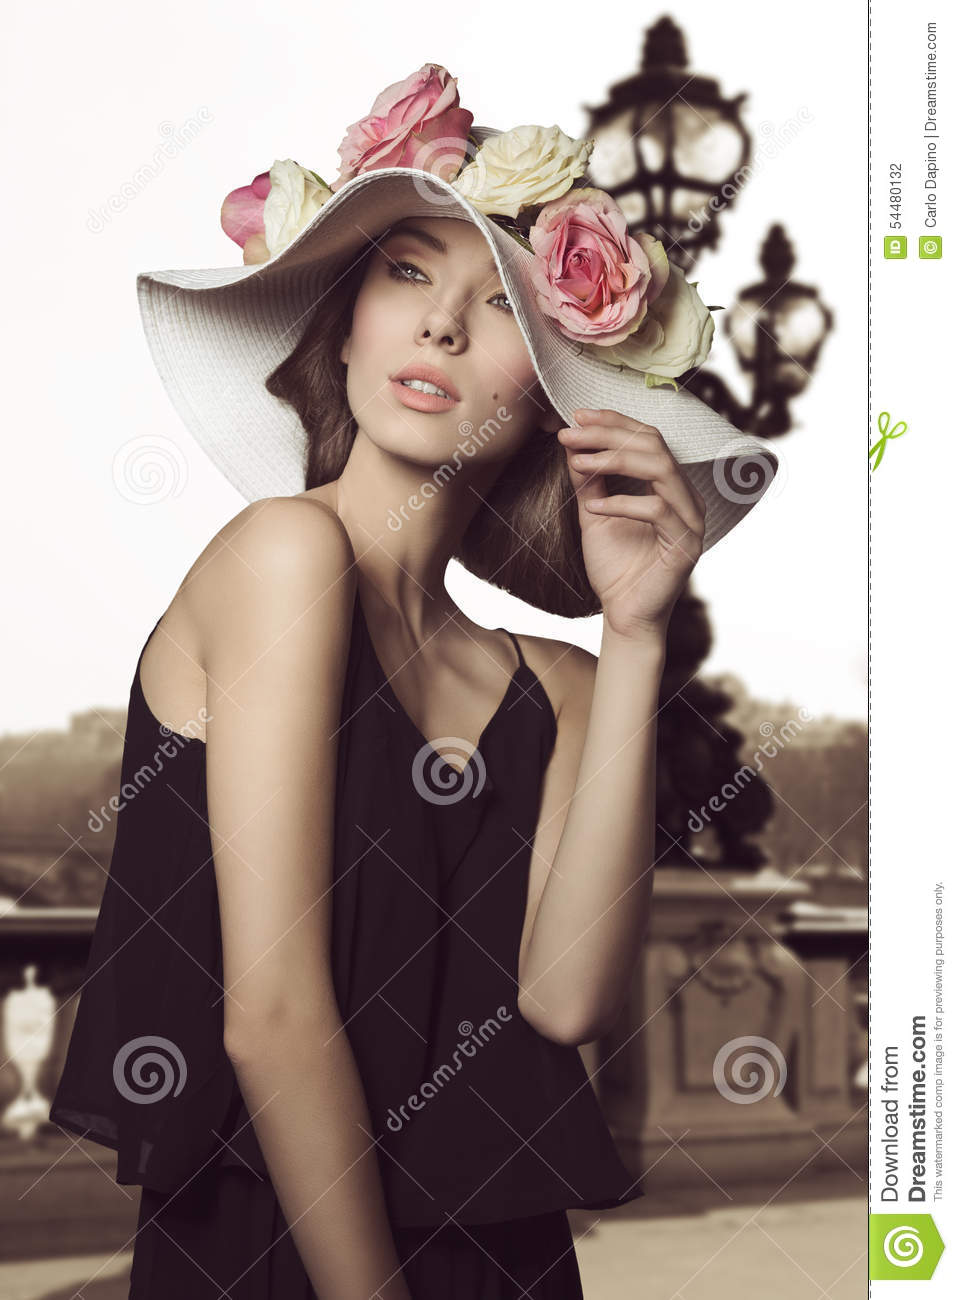 Girl stylish images with hat advise dress in spring in 2019